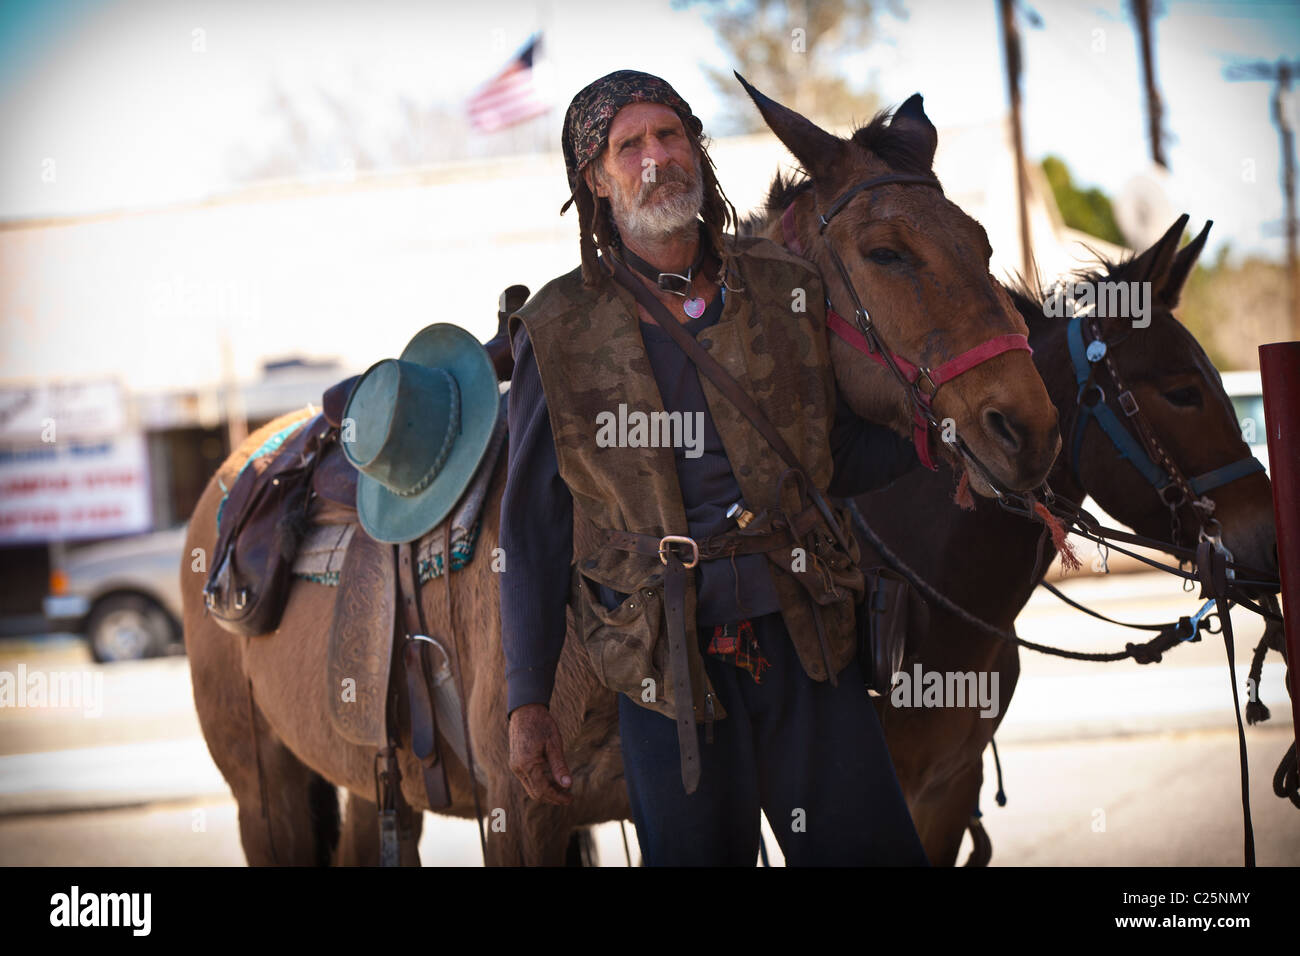 A Slabber, one of the eccentric residents of Slab City in the desert outside Niland, CA. - Stock Image